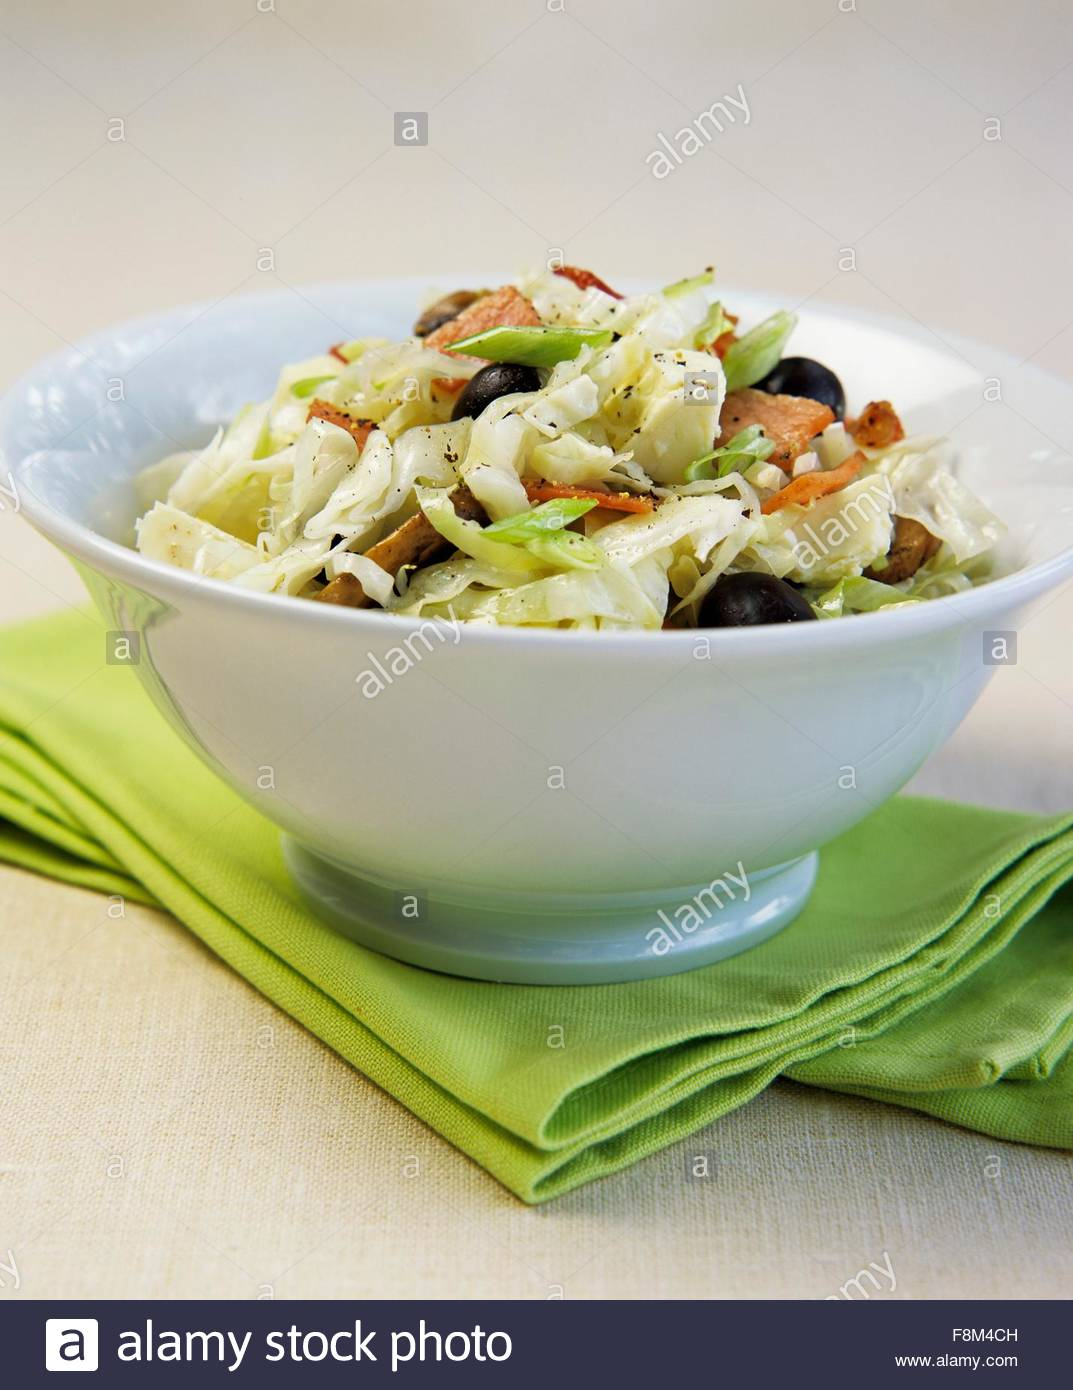 White cabbage with bacon, feta and olives - Stock Image